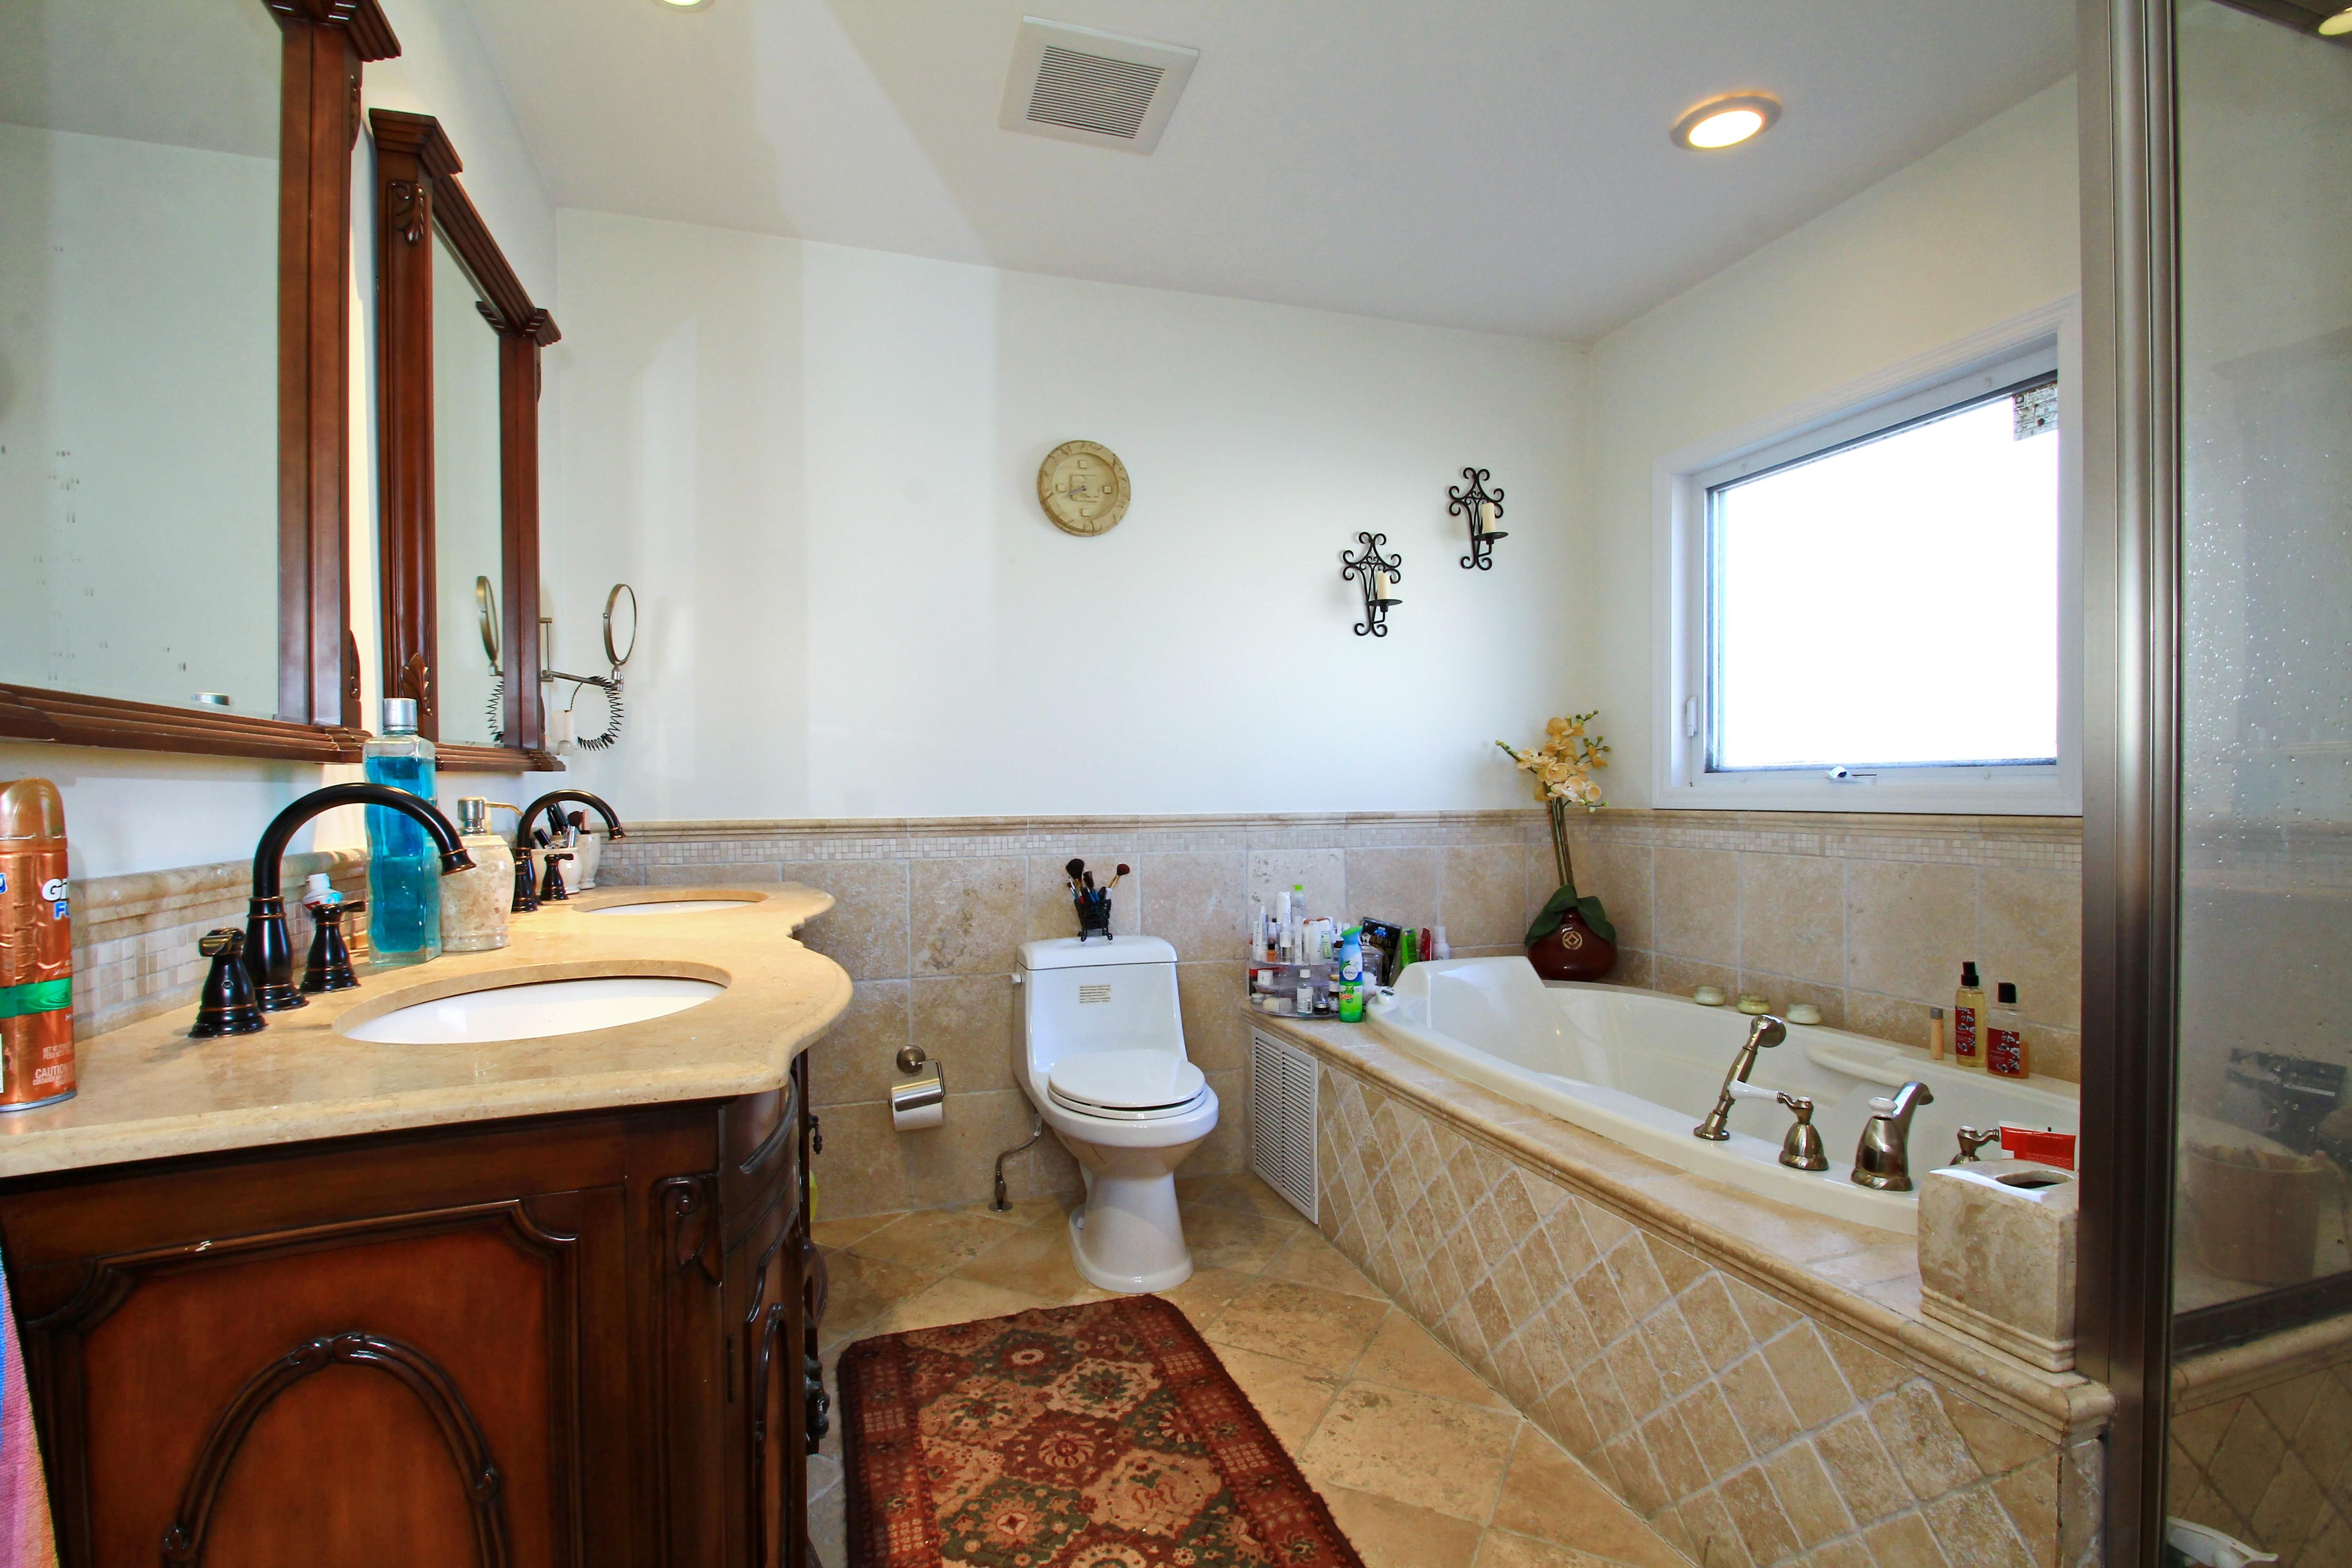 Master bedroom with jacuzzi tub  OnSuite Master Bath with Jacuzzi Tub Separate Shower and Dual